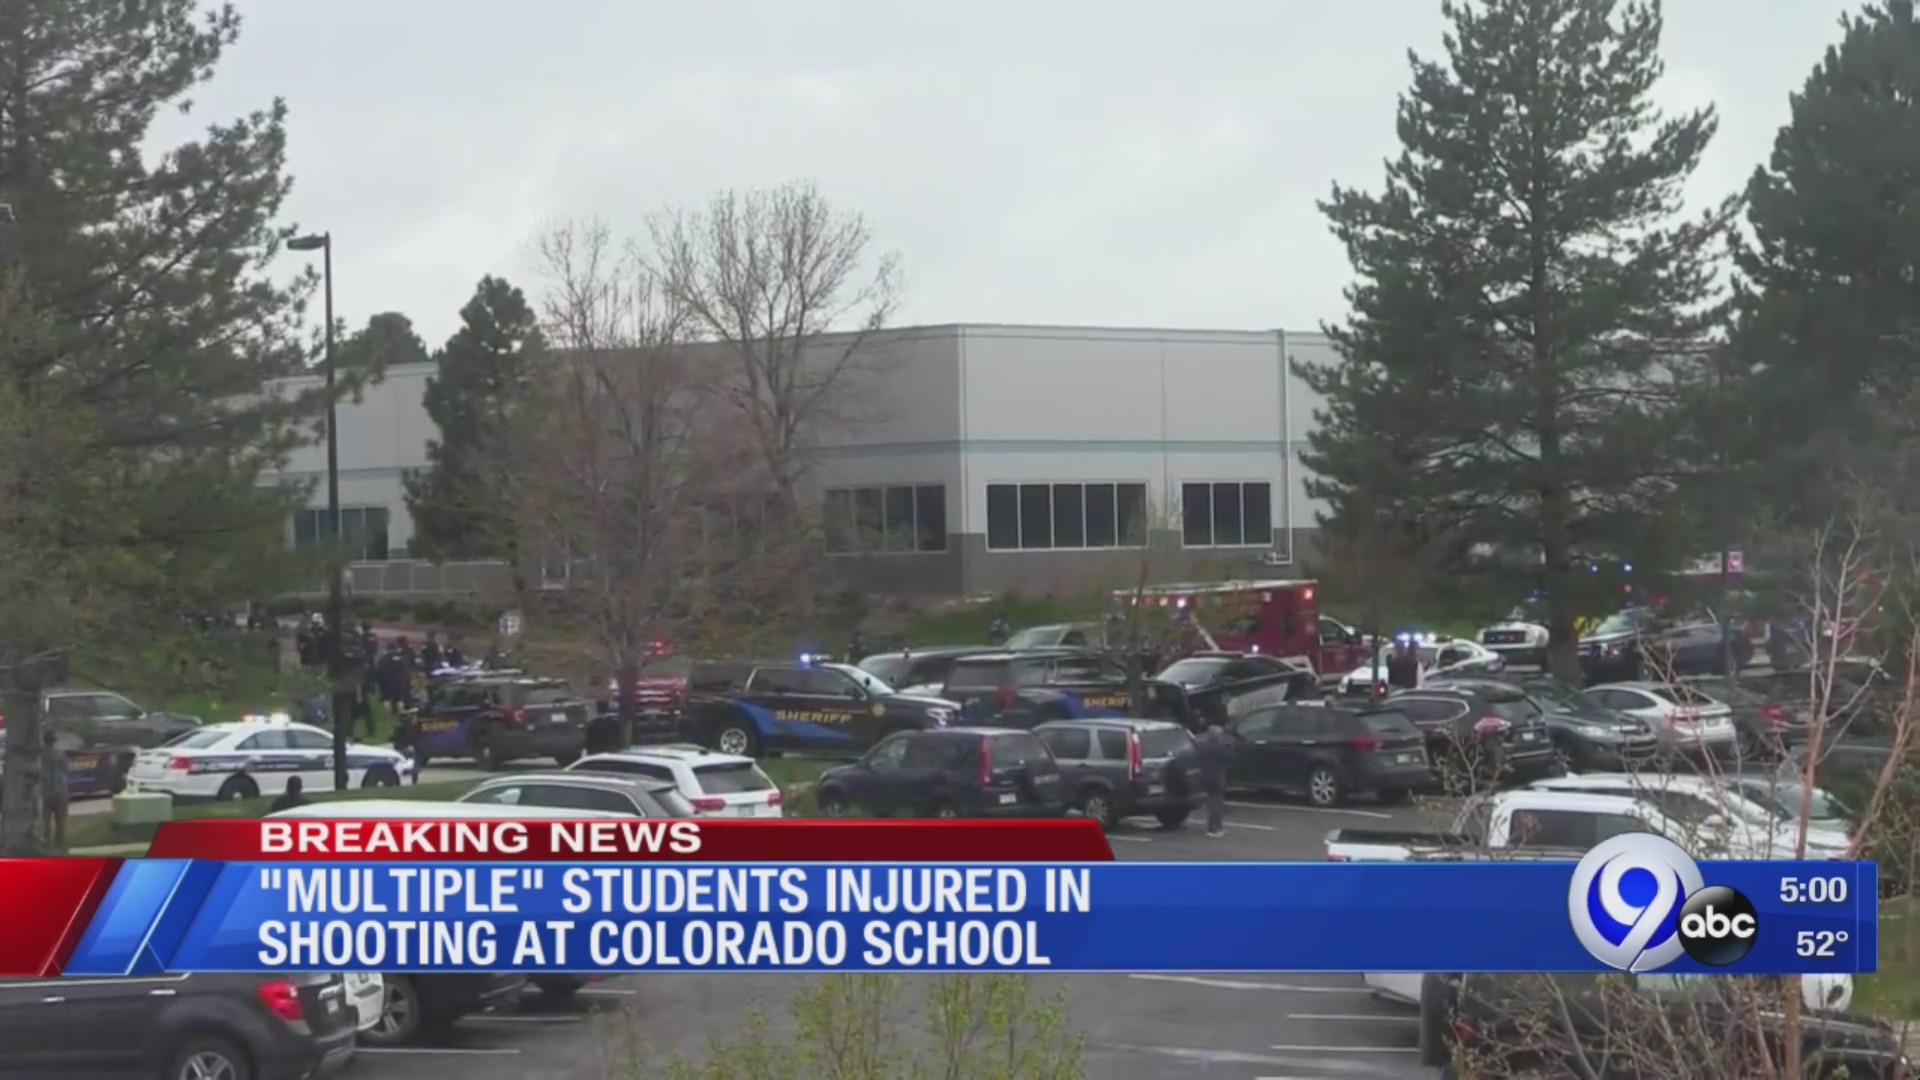 Multiple_students_injured_in_Colorado_sh_0_20190507210540